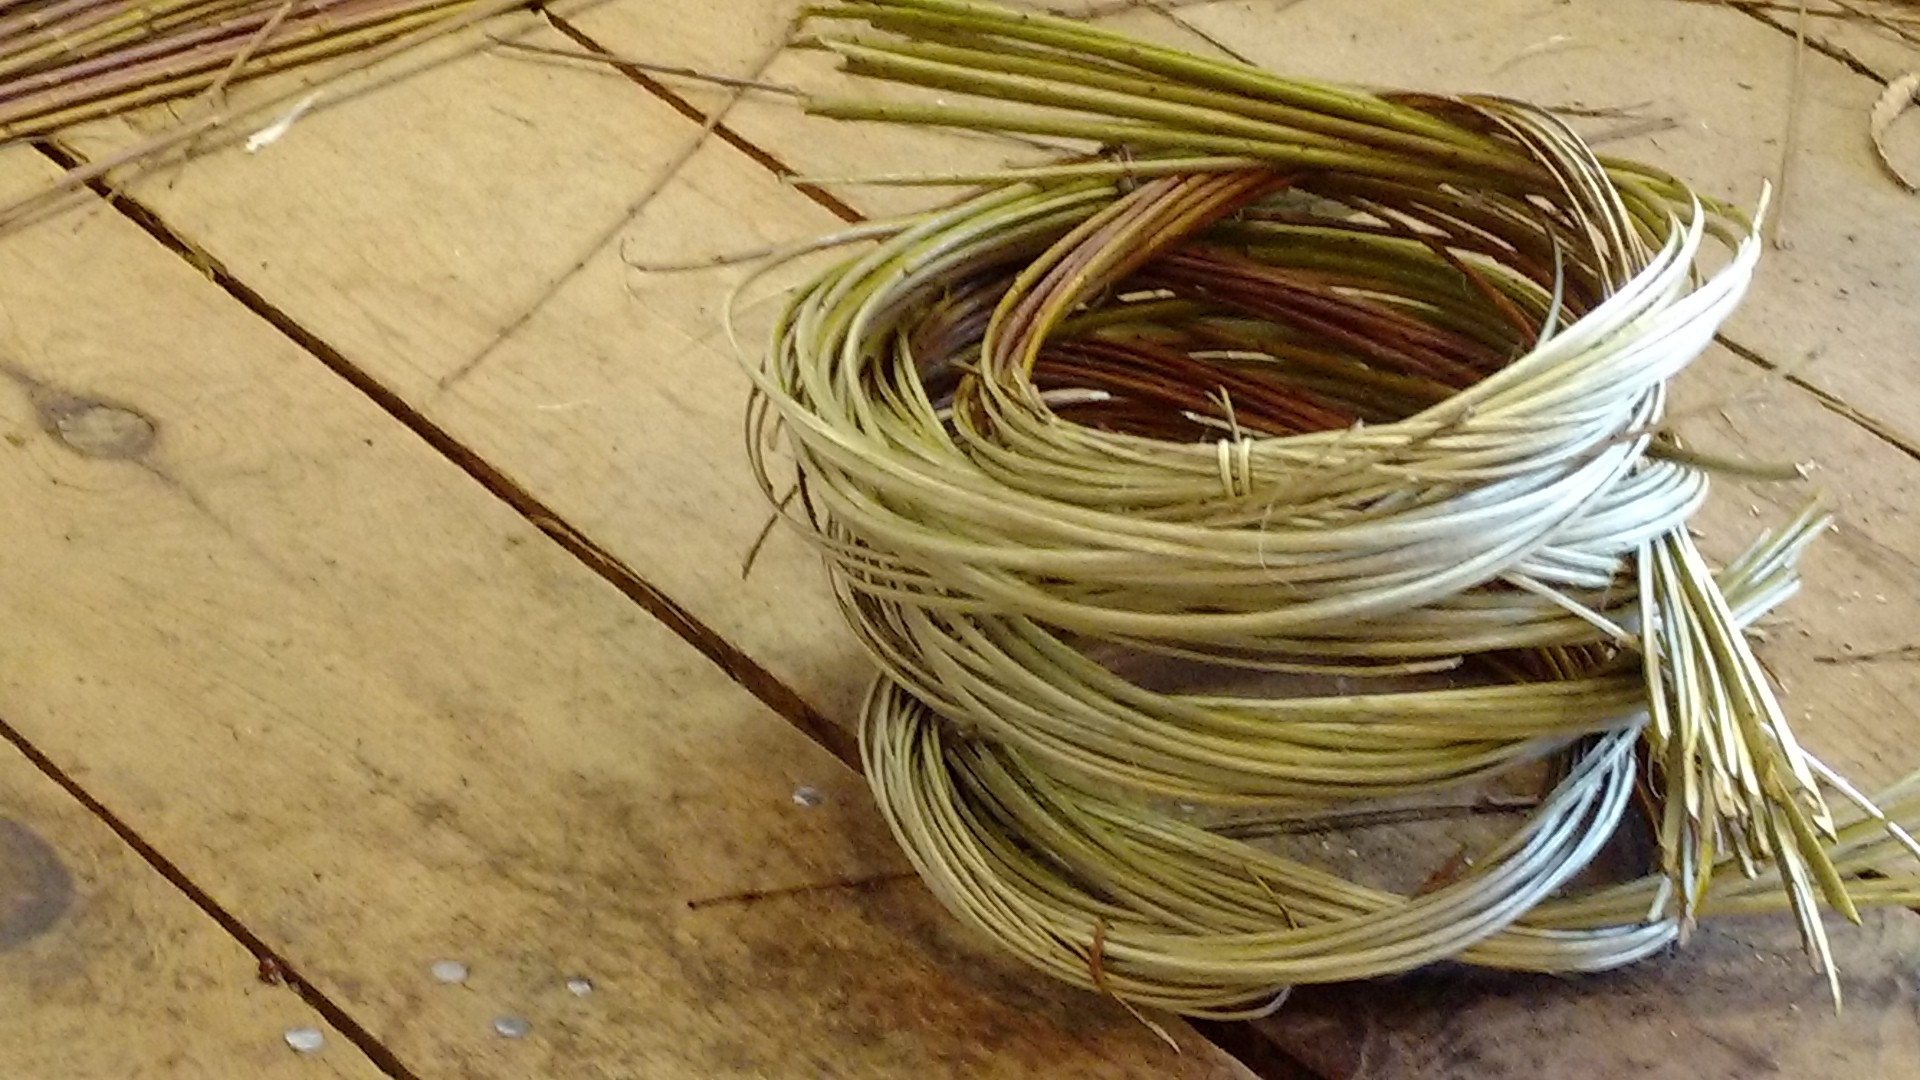 Freshly cut willow cleaved with the bark on and coiled for boiling.